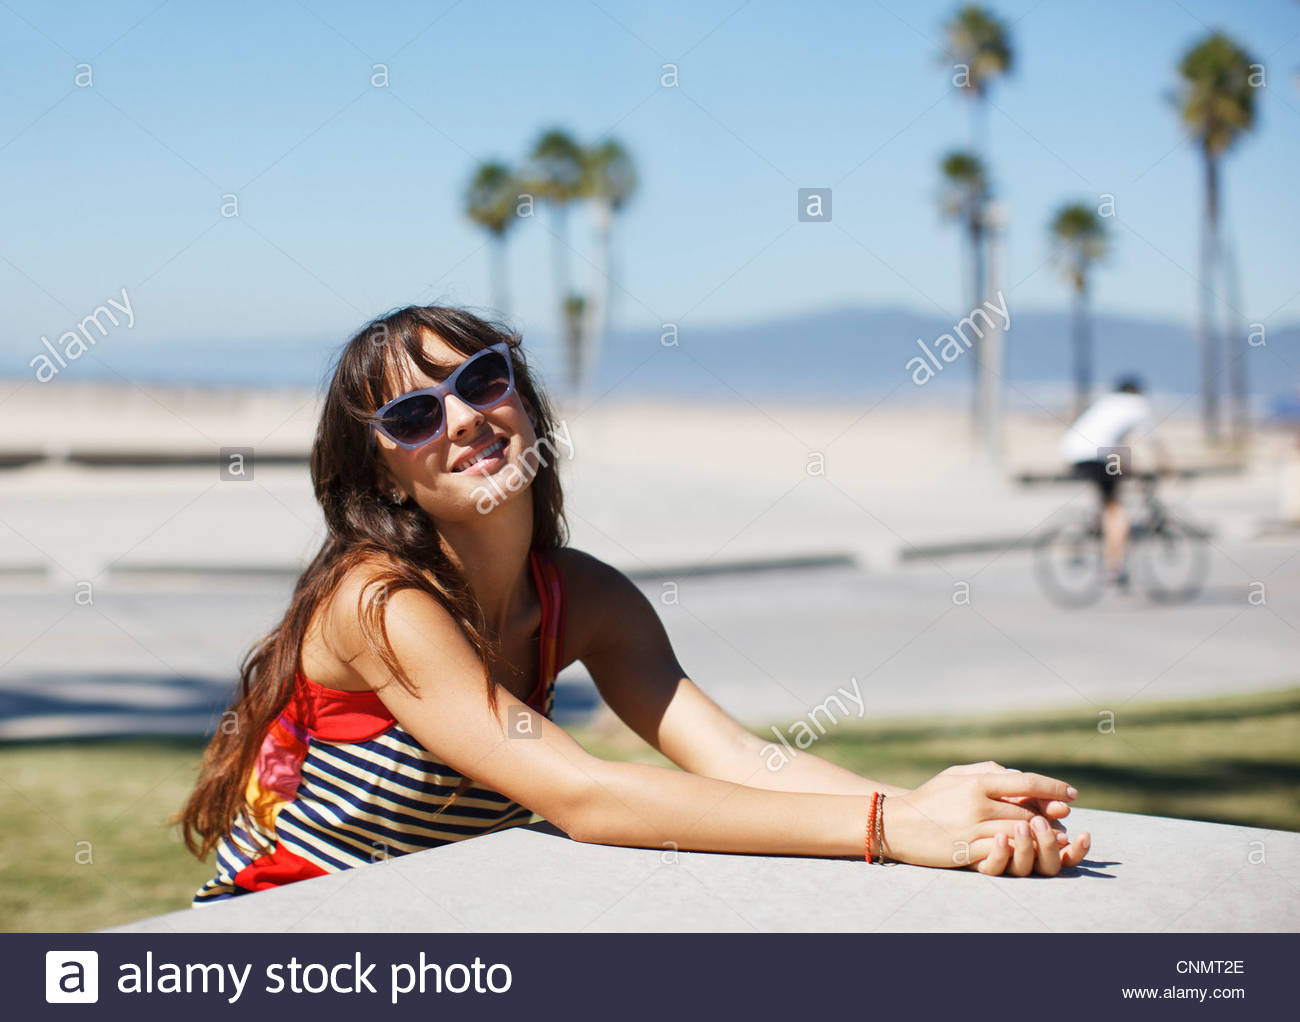 Woman sitting at table in park - Stock Image